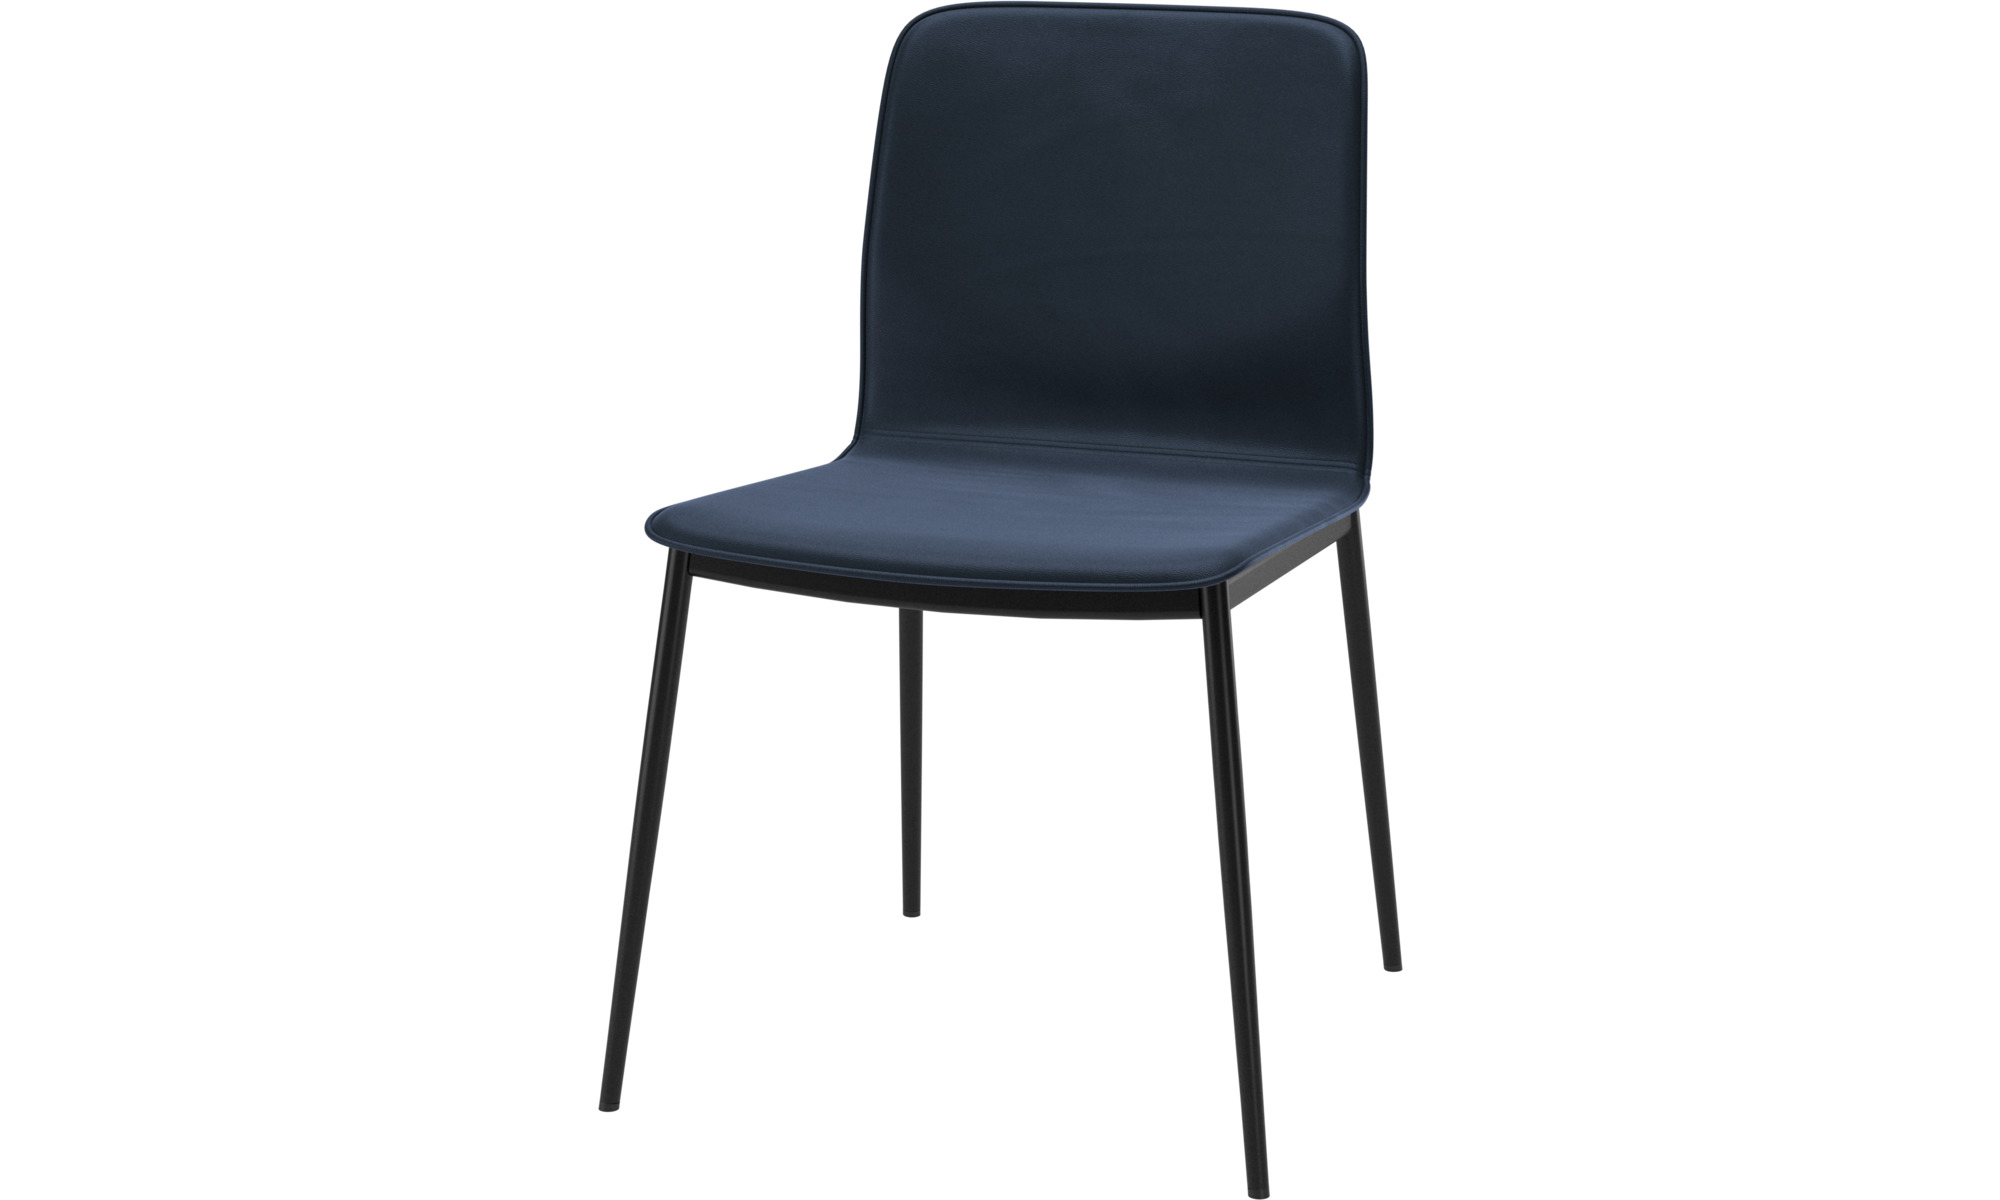 Dining chairs - Newport dining chair - Blue - Leather